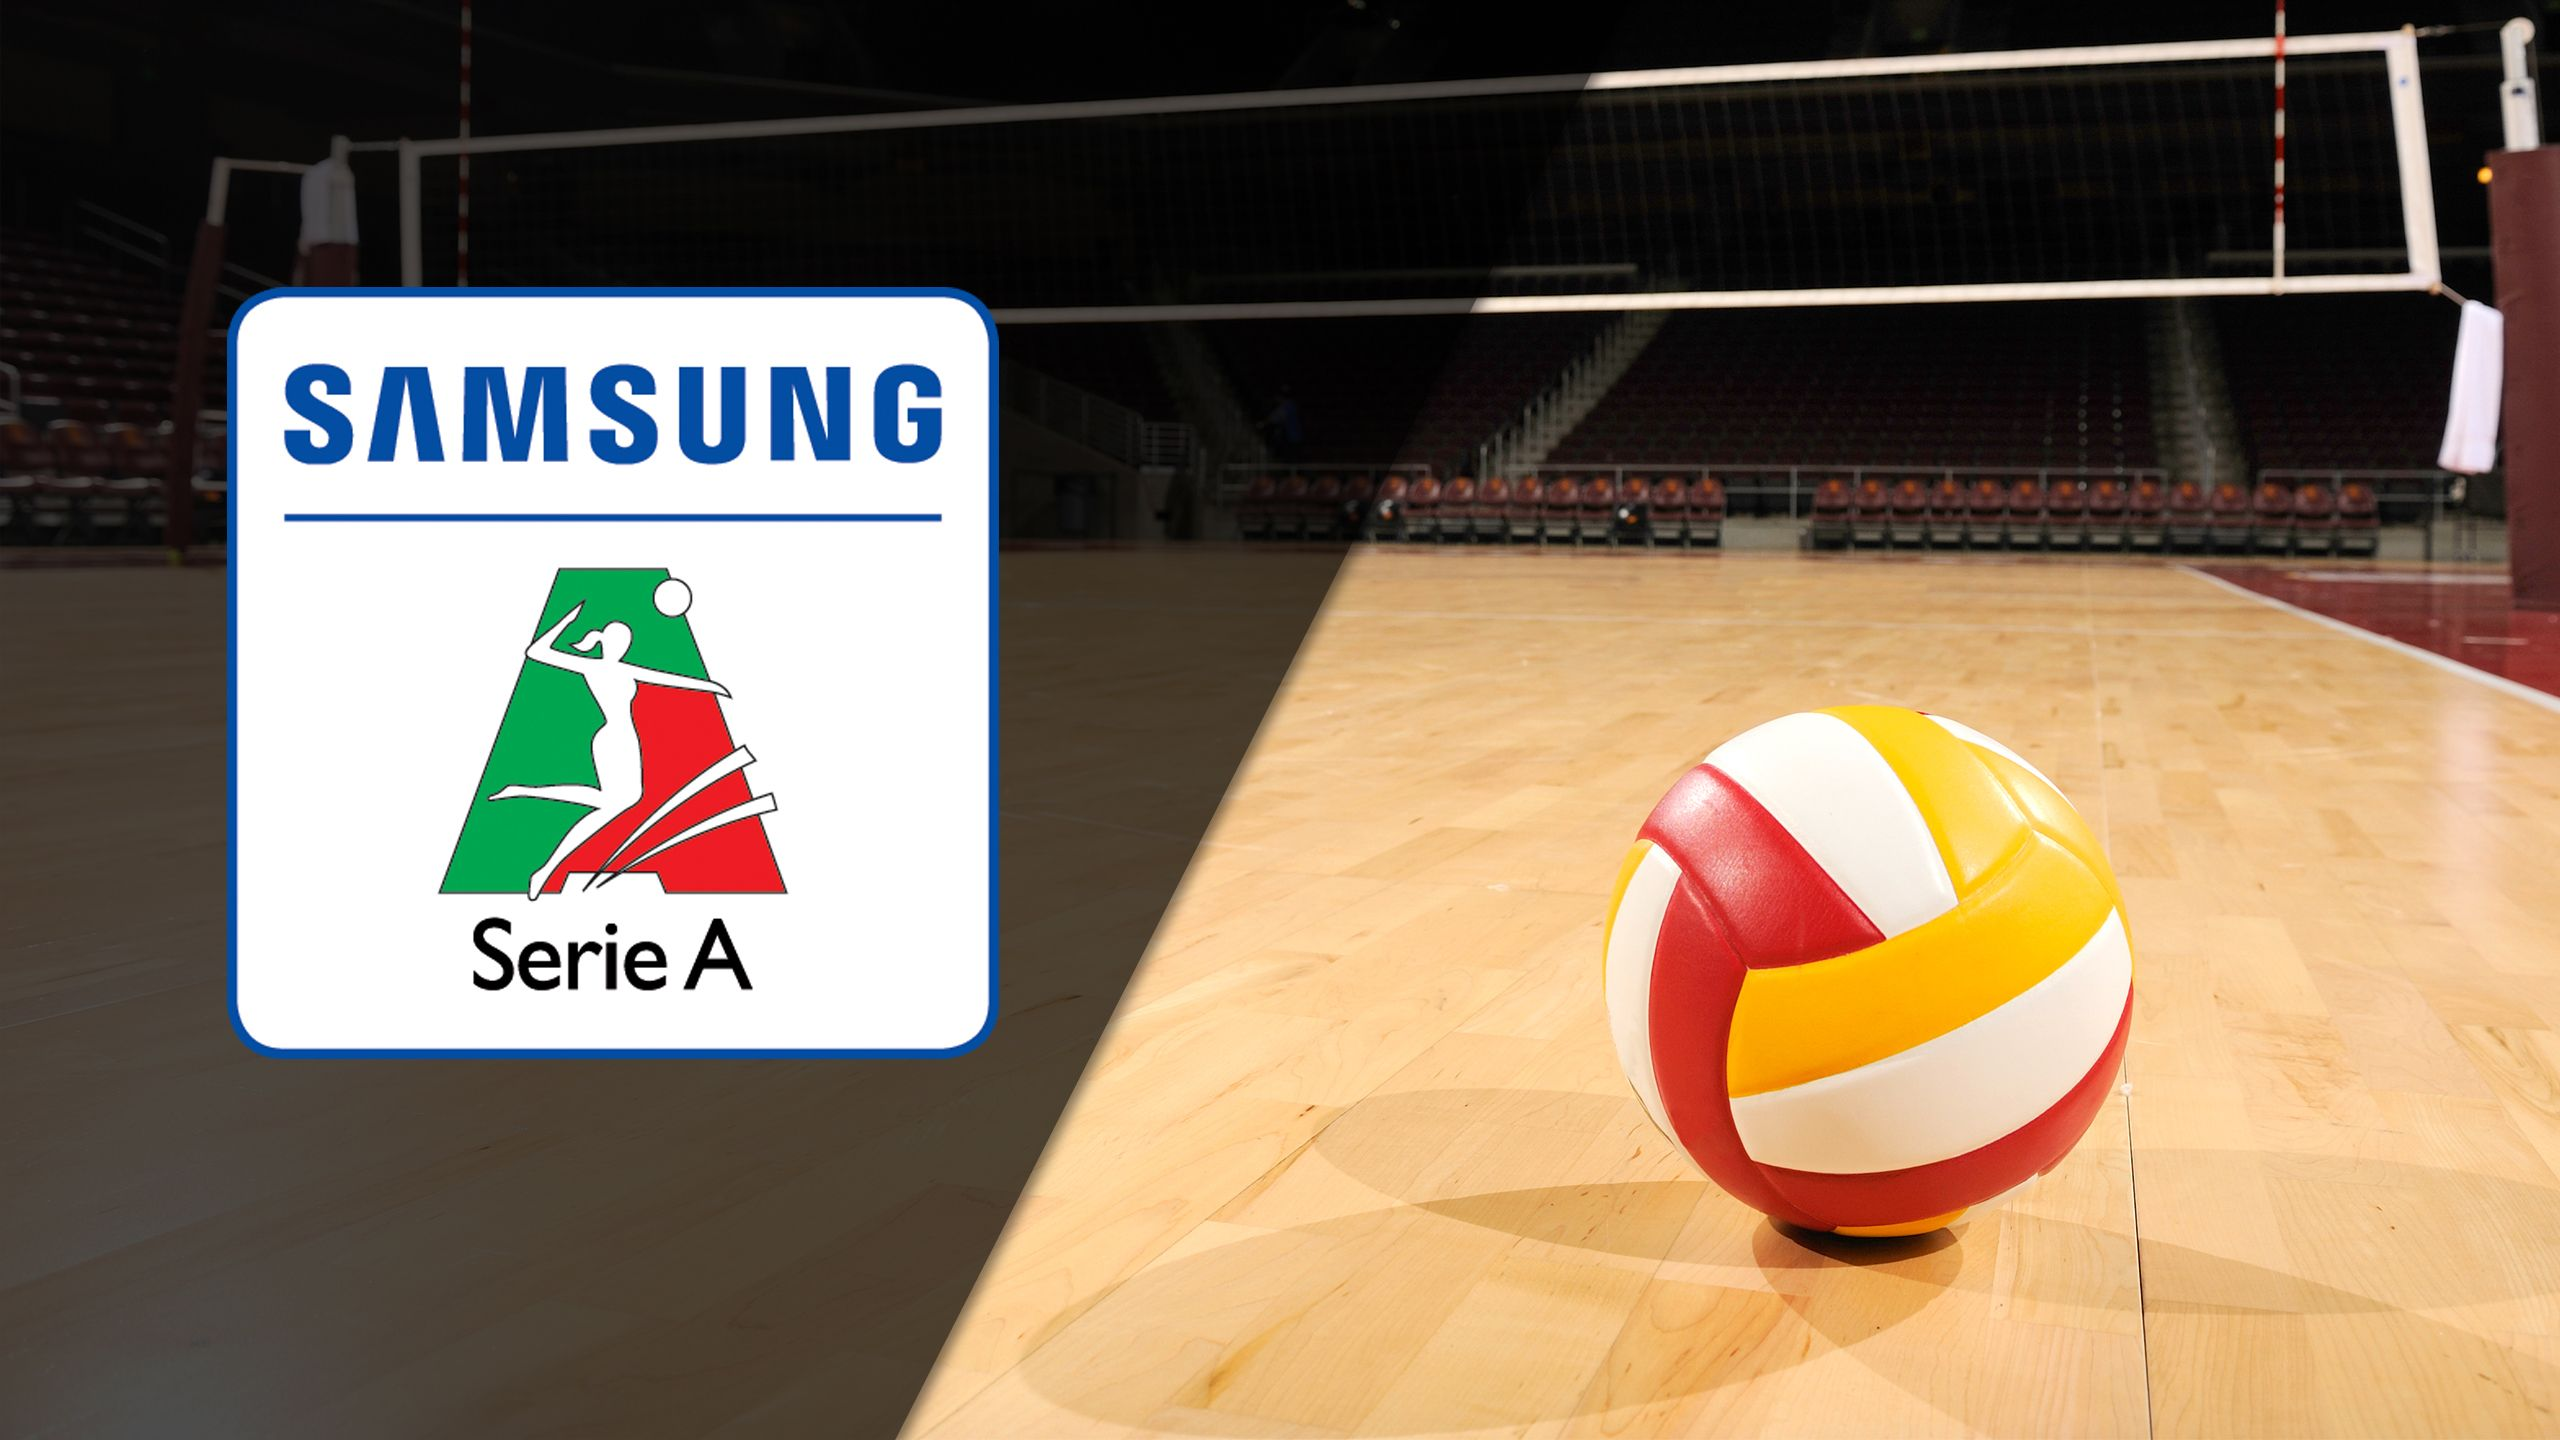 Liu Jo Nordmeccanica Modena vs. Sab Volley Legnano (Italian Serie A Women's Volleyball League)